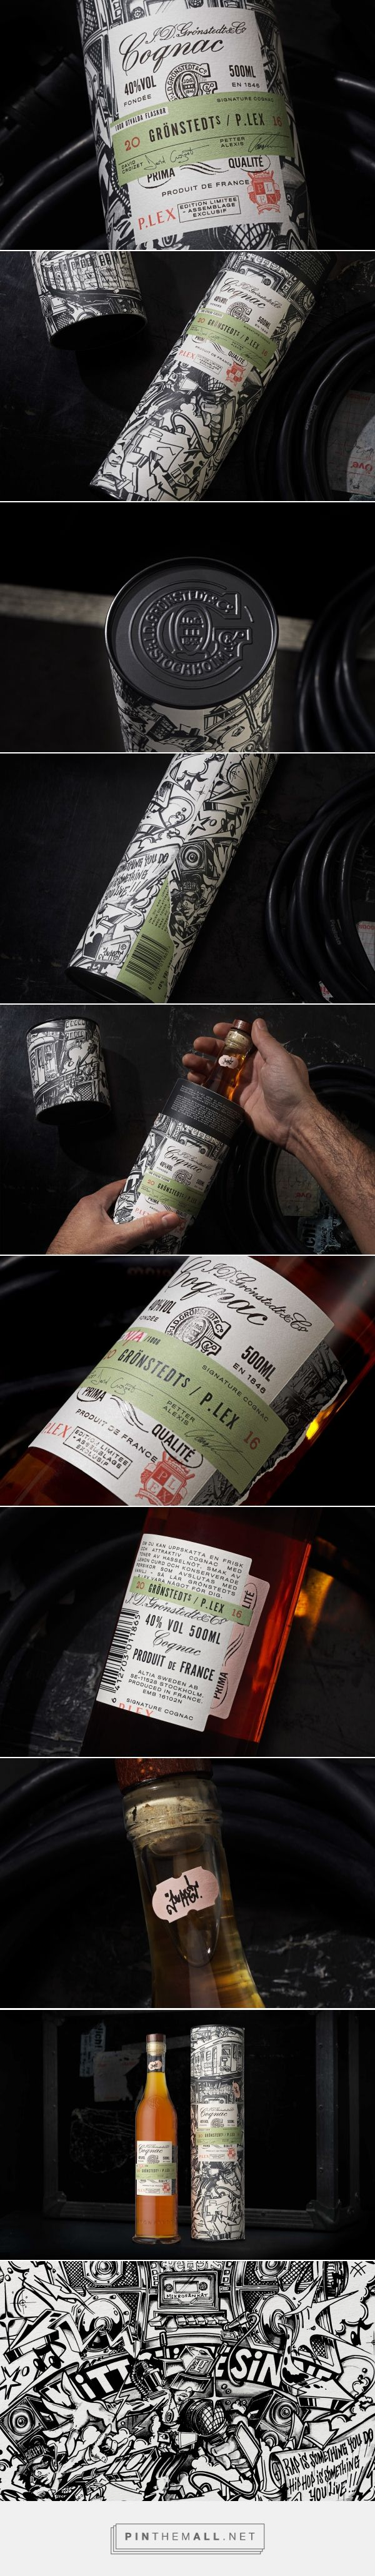 Grönstedts / P. Lex Signature Cognac packaging design by NINE - http://www.packagingoftheworld.com/2017/03/gronstedts-p-lex-signature-cognac.html